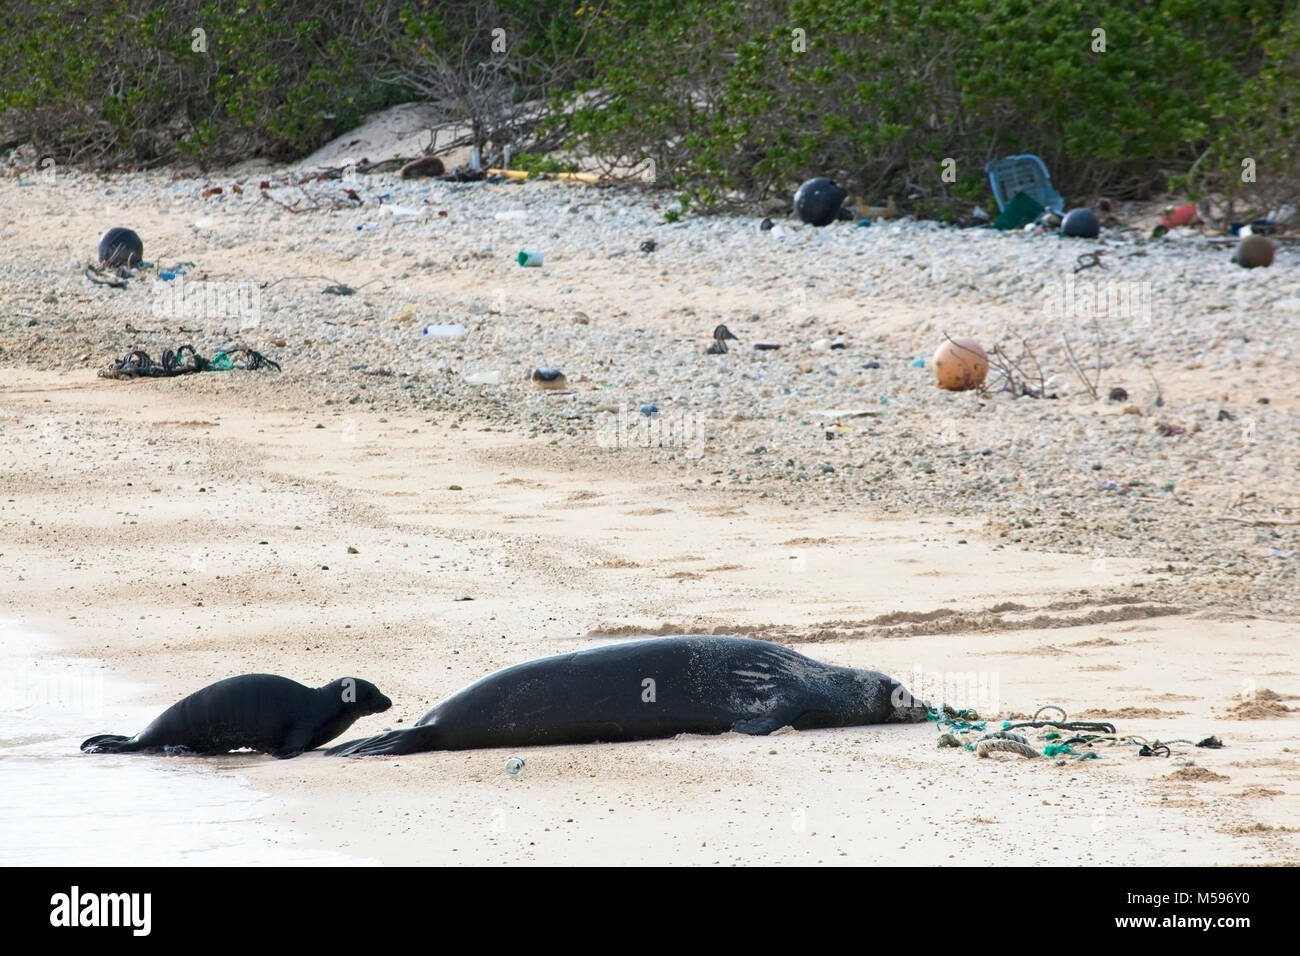 Hawaiian Monk Seal (Neomonachus schauinslandi) mother and  baby on North Pacific island with marine debris including - Stock Image